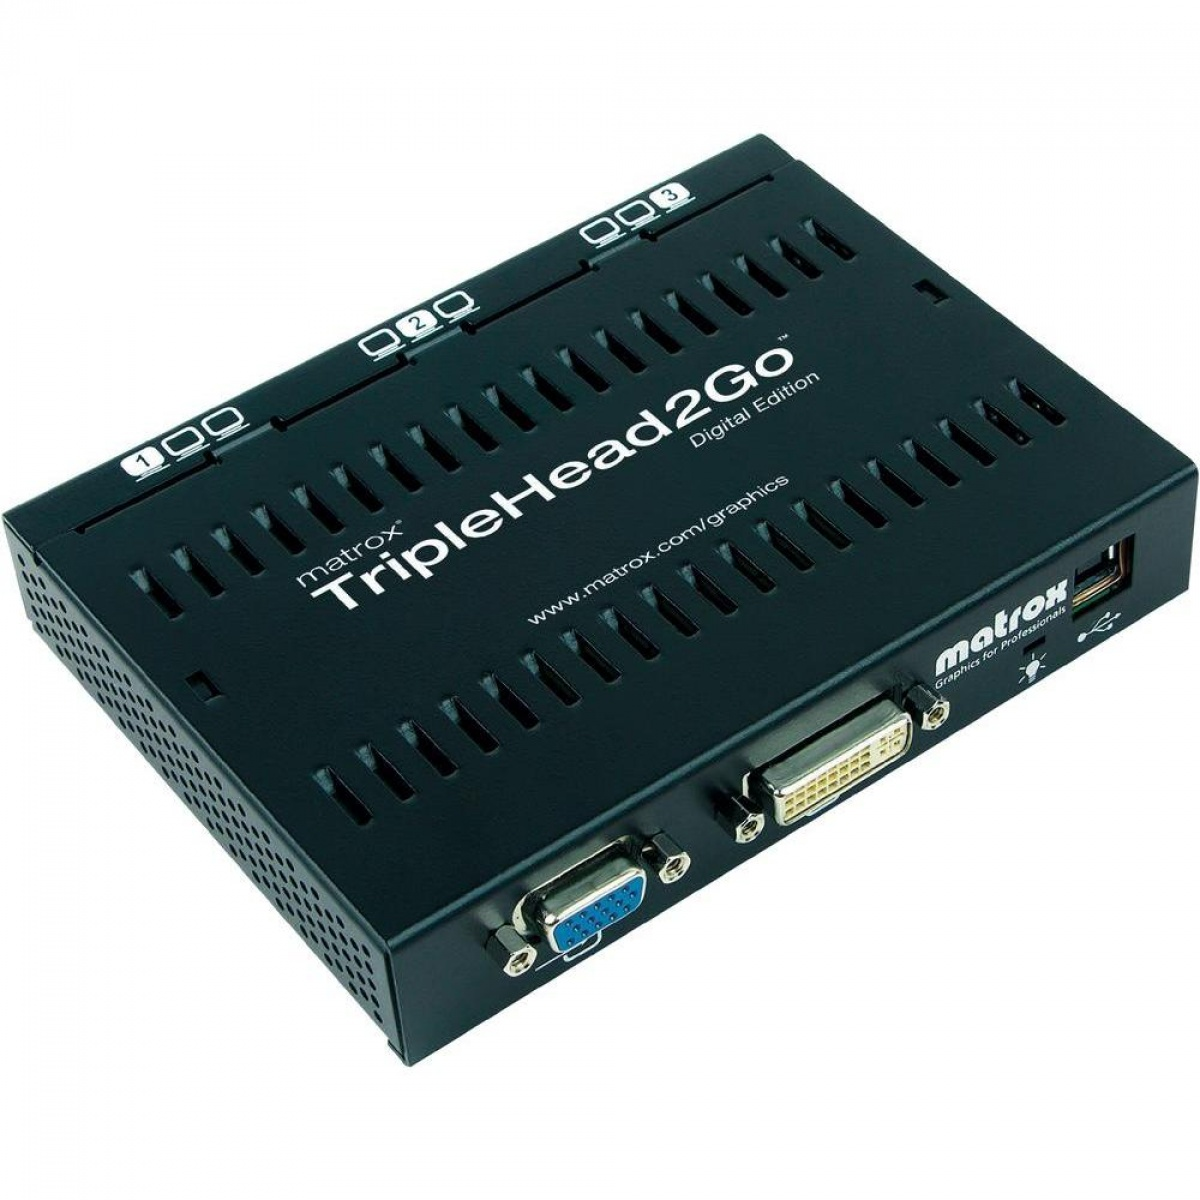 Adaptor grafic TripleHead2Go, Triple Digital Edition, retail